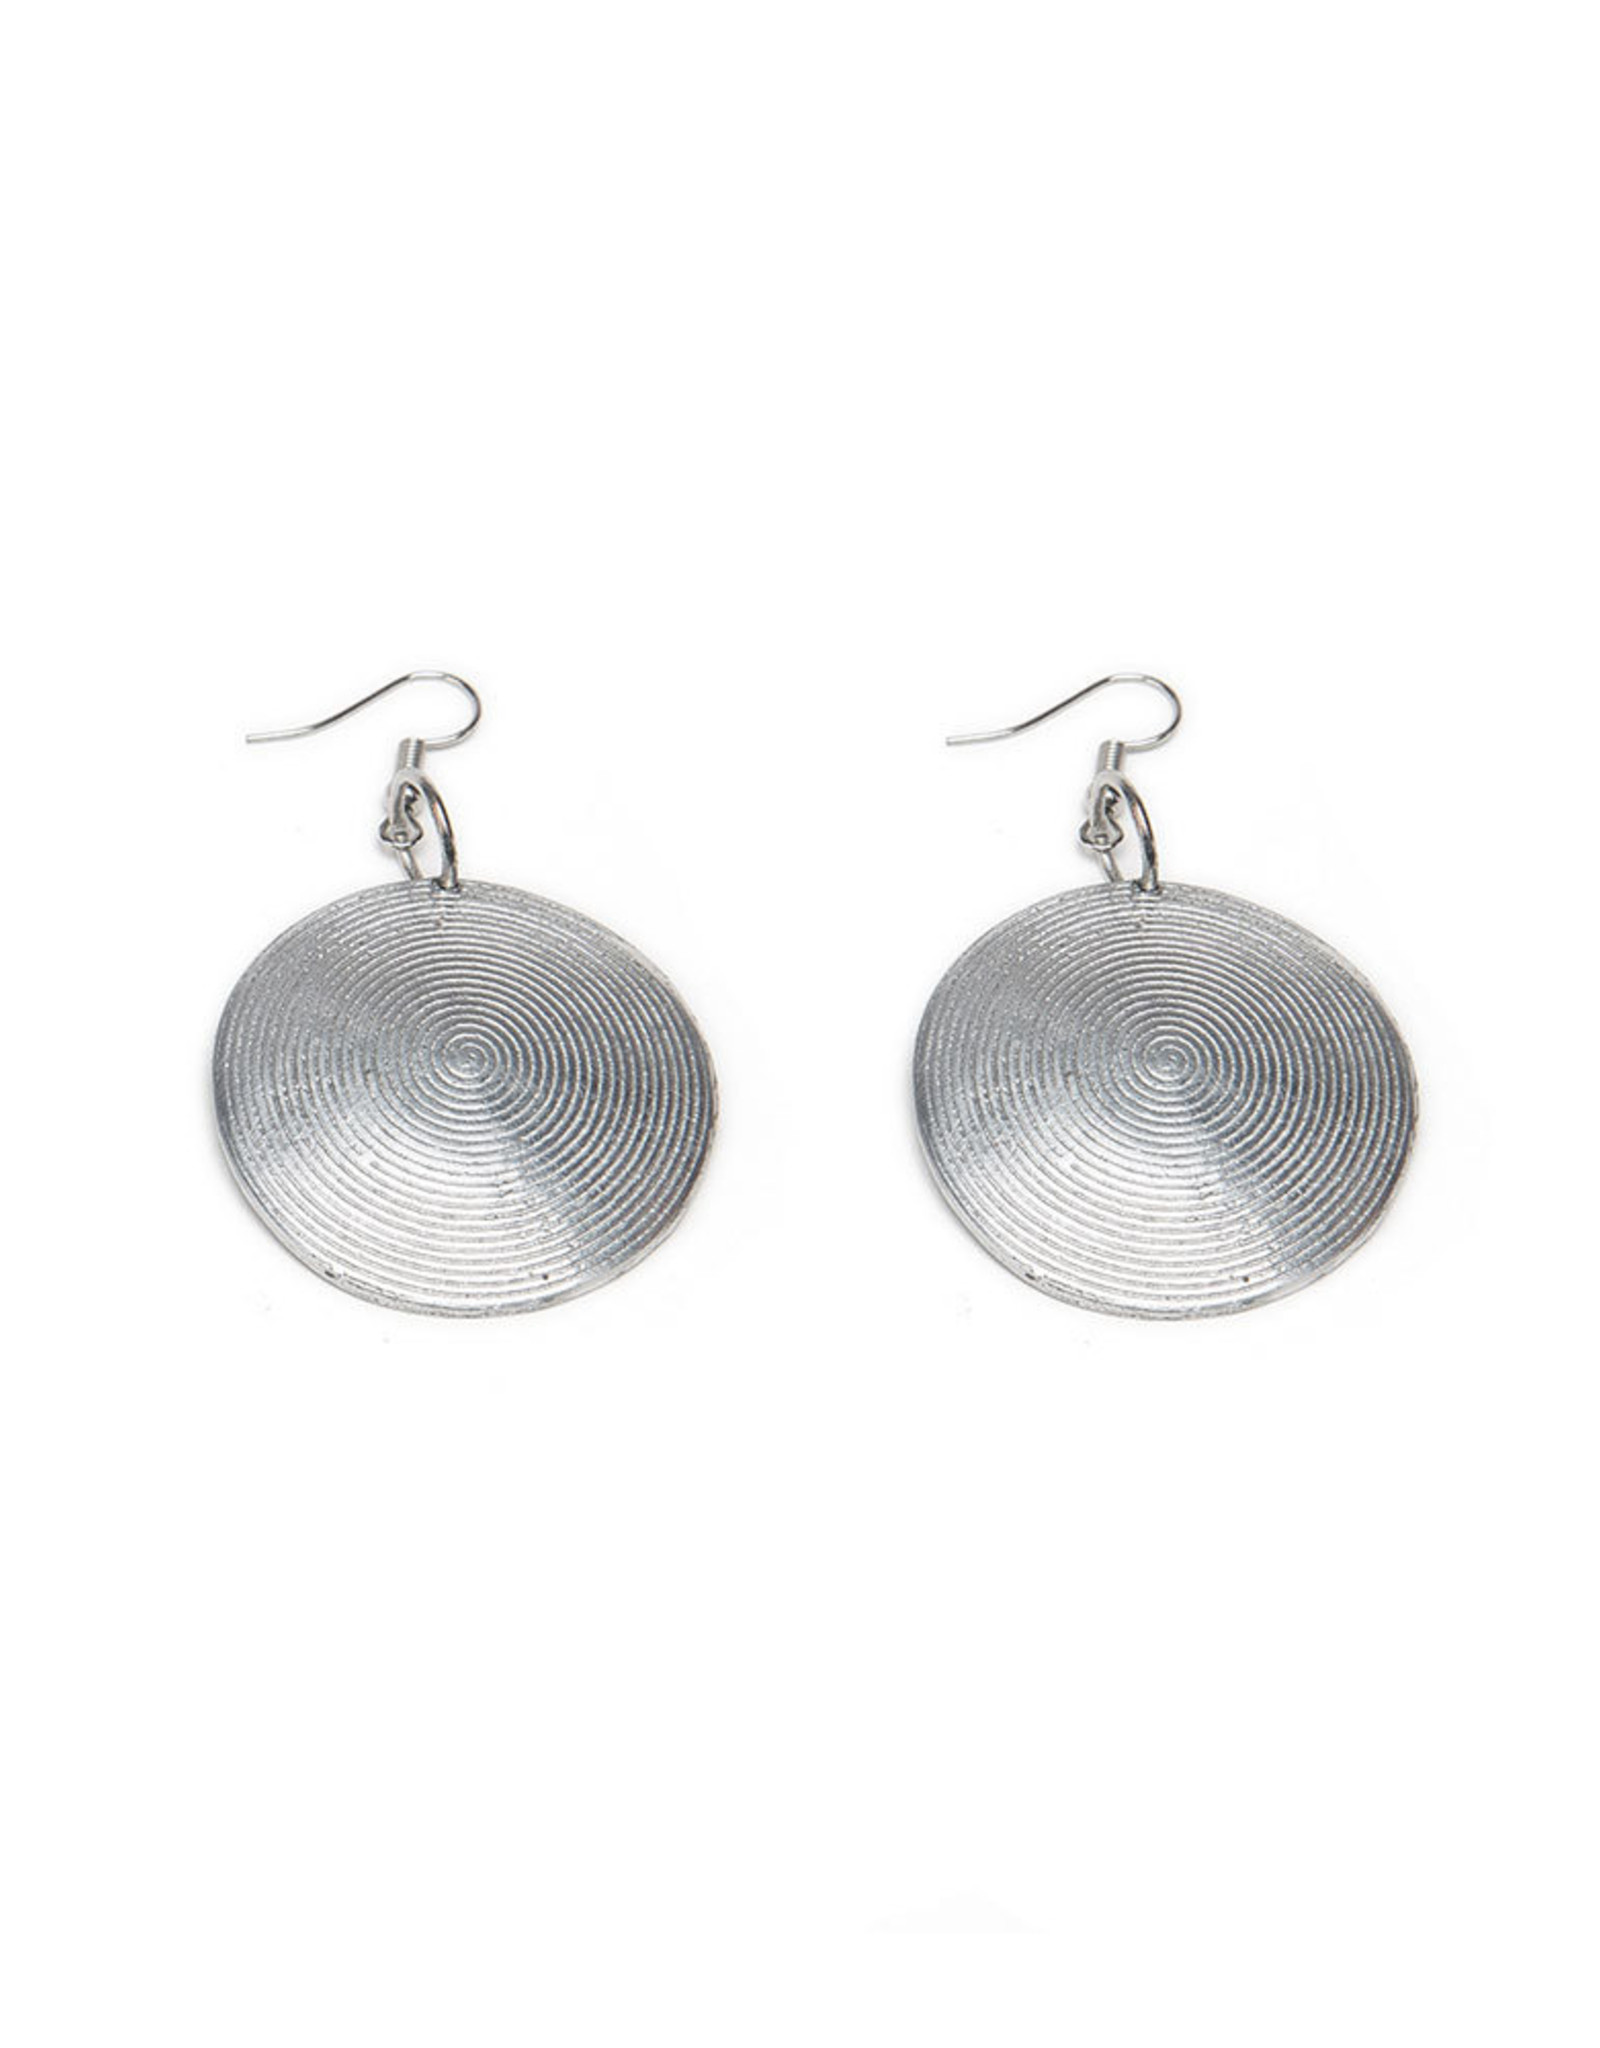 VESTOPAZZO Aluminum Round Spiral Earrings